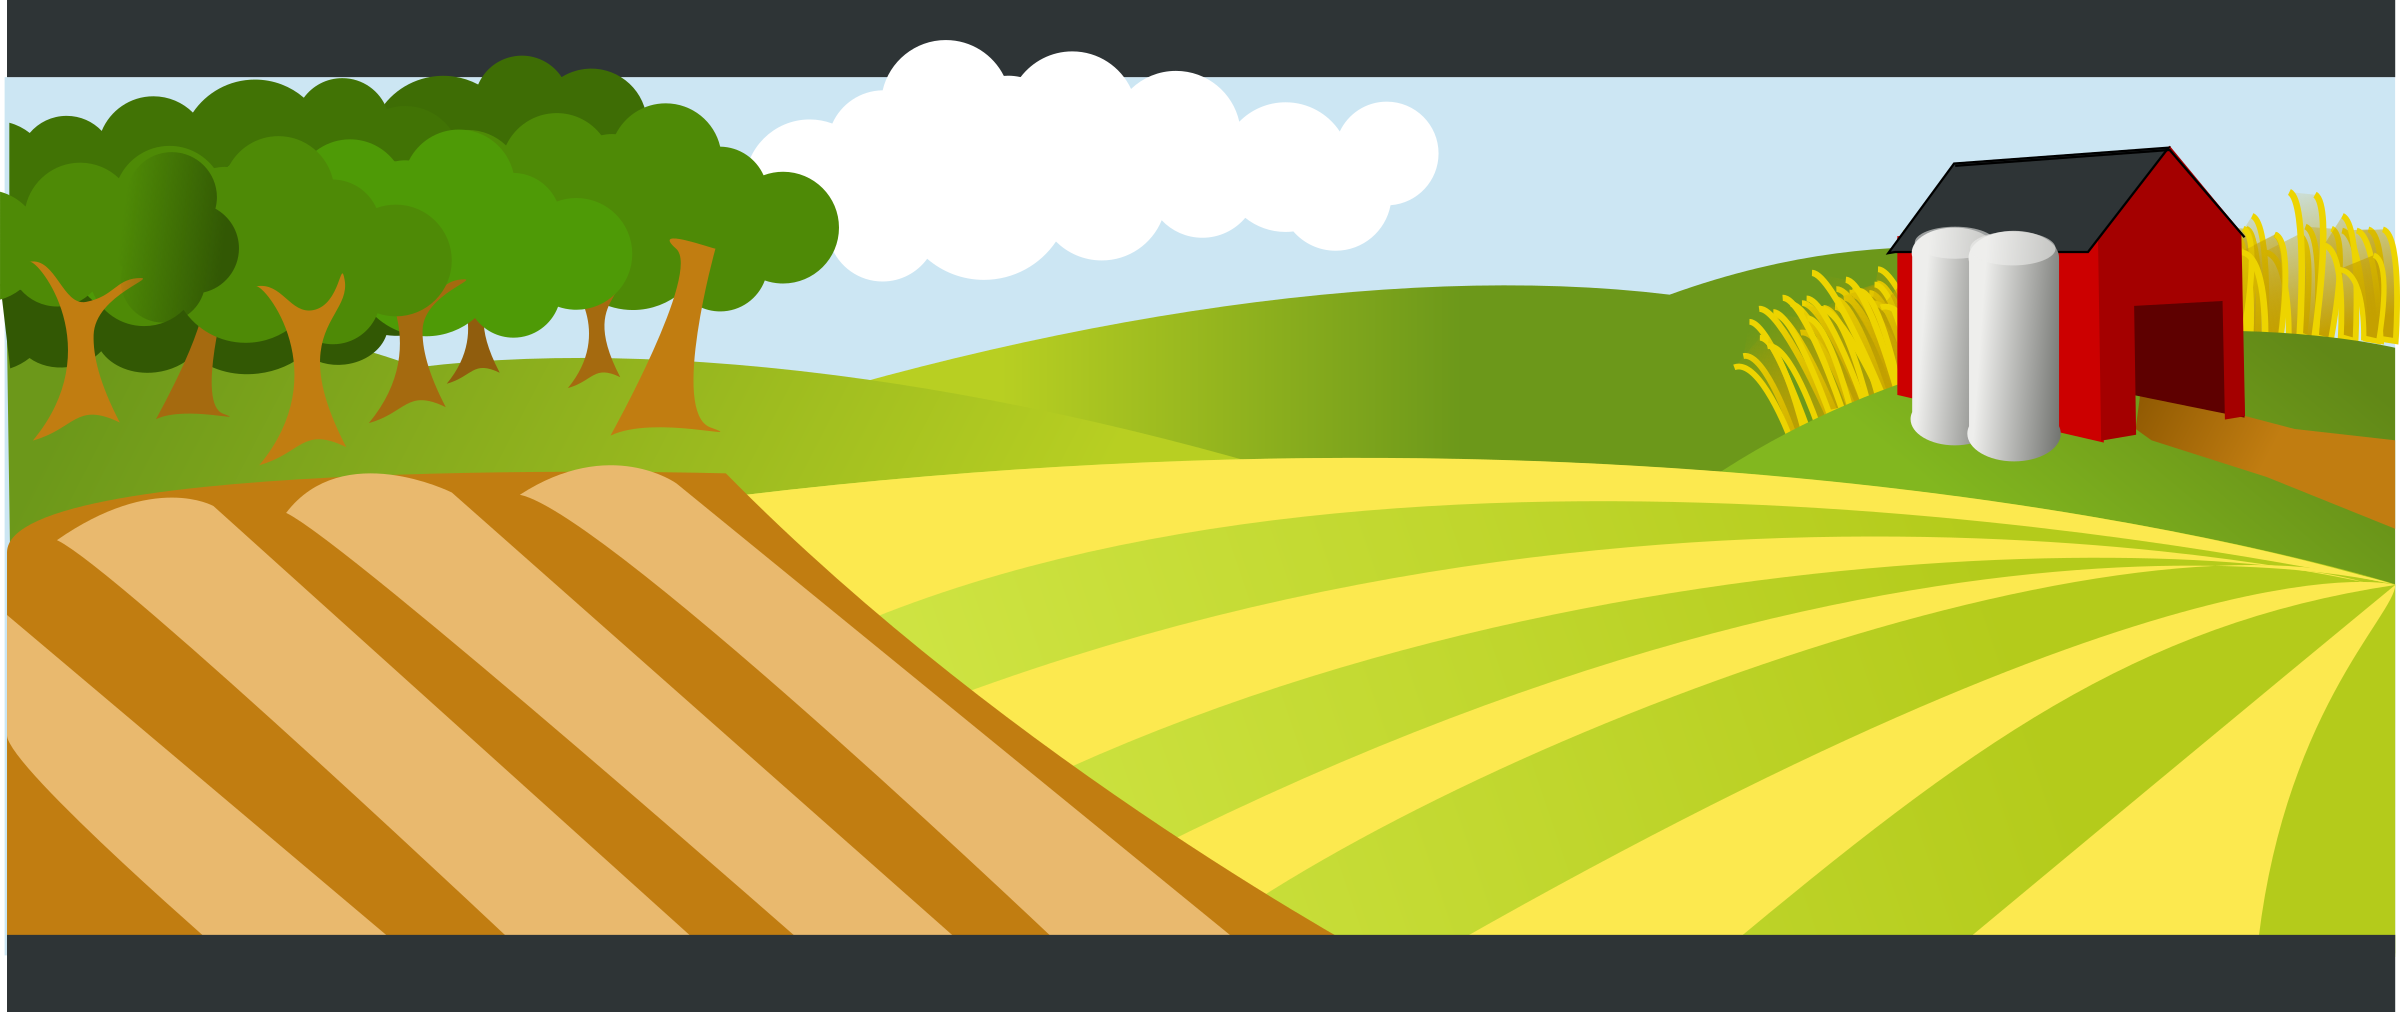 Clipart - landscape with red farm